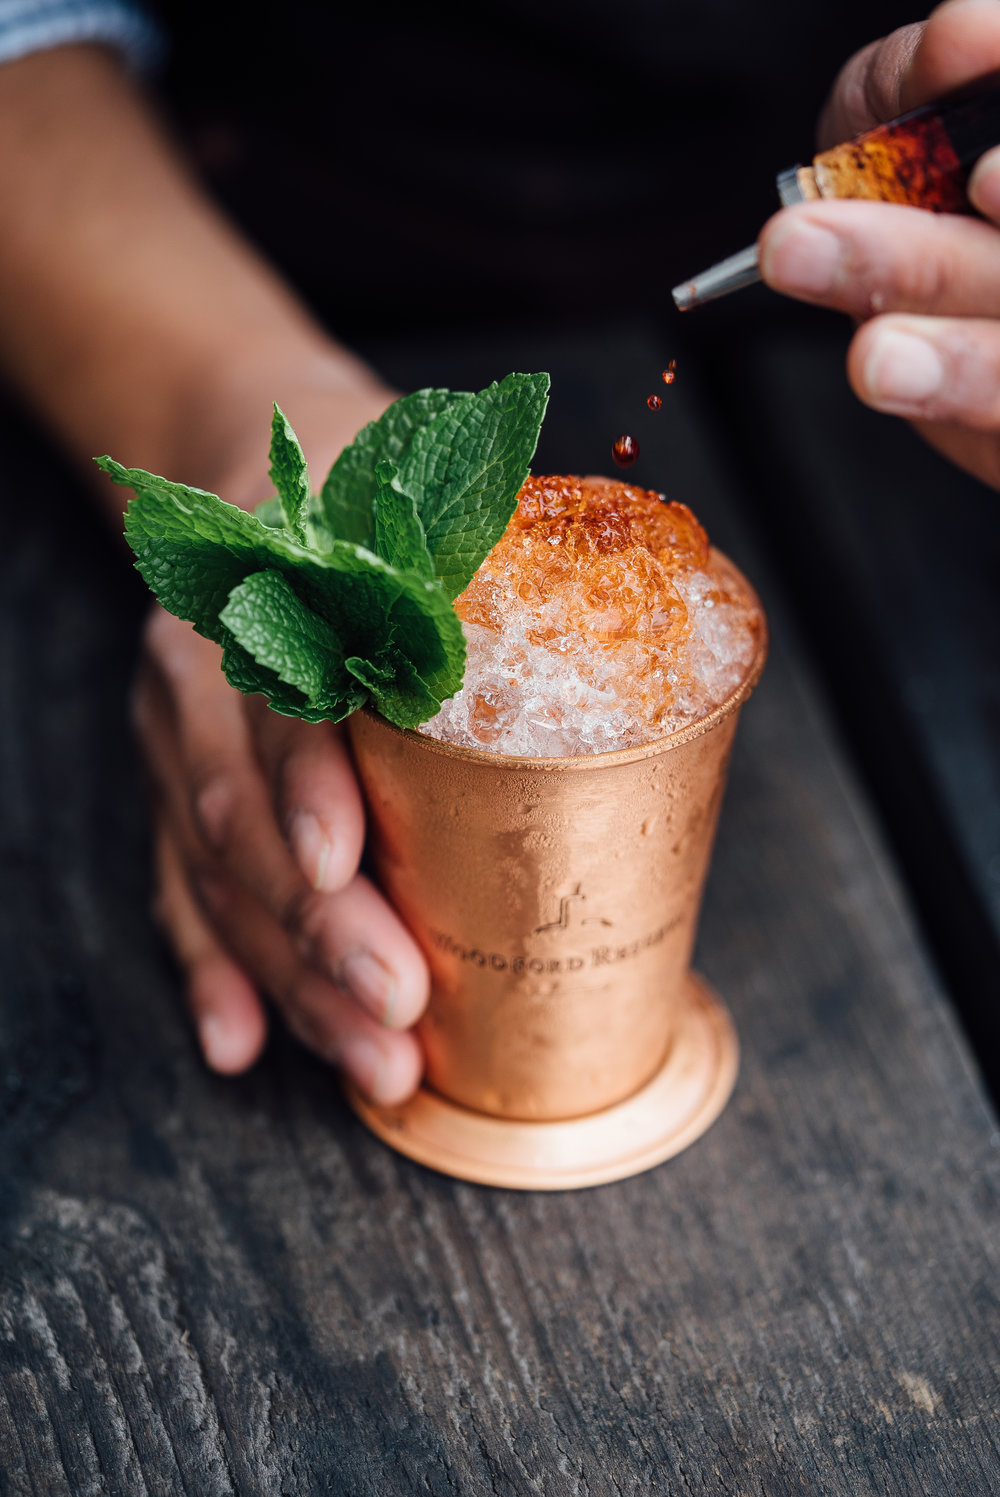 Moscow Mule - Vodka, Ginger Beer, Lime | 12